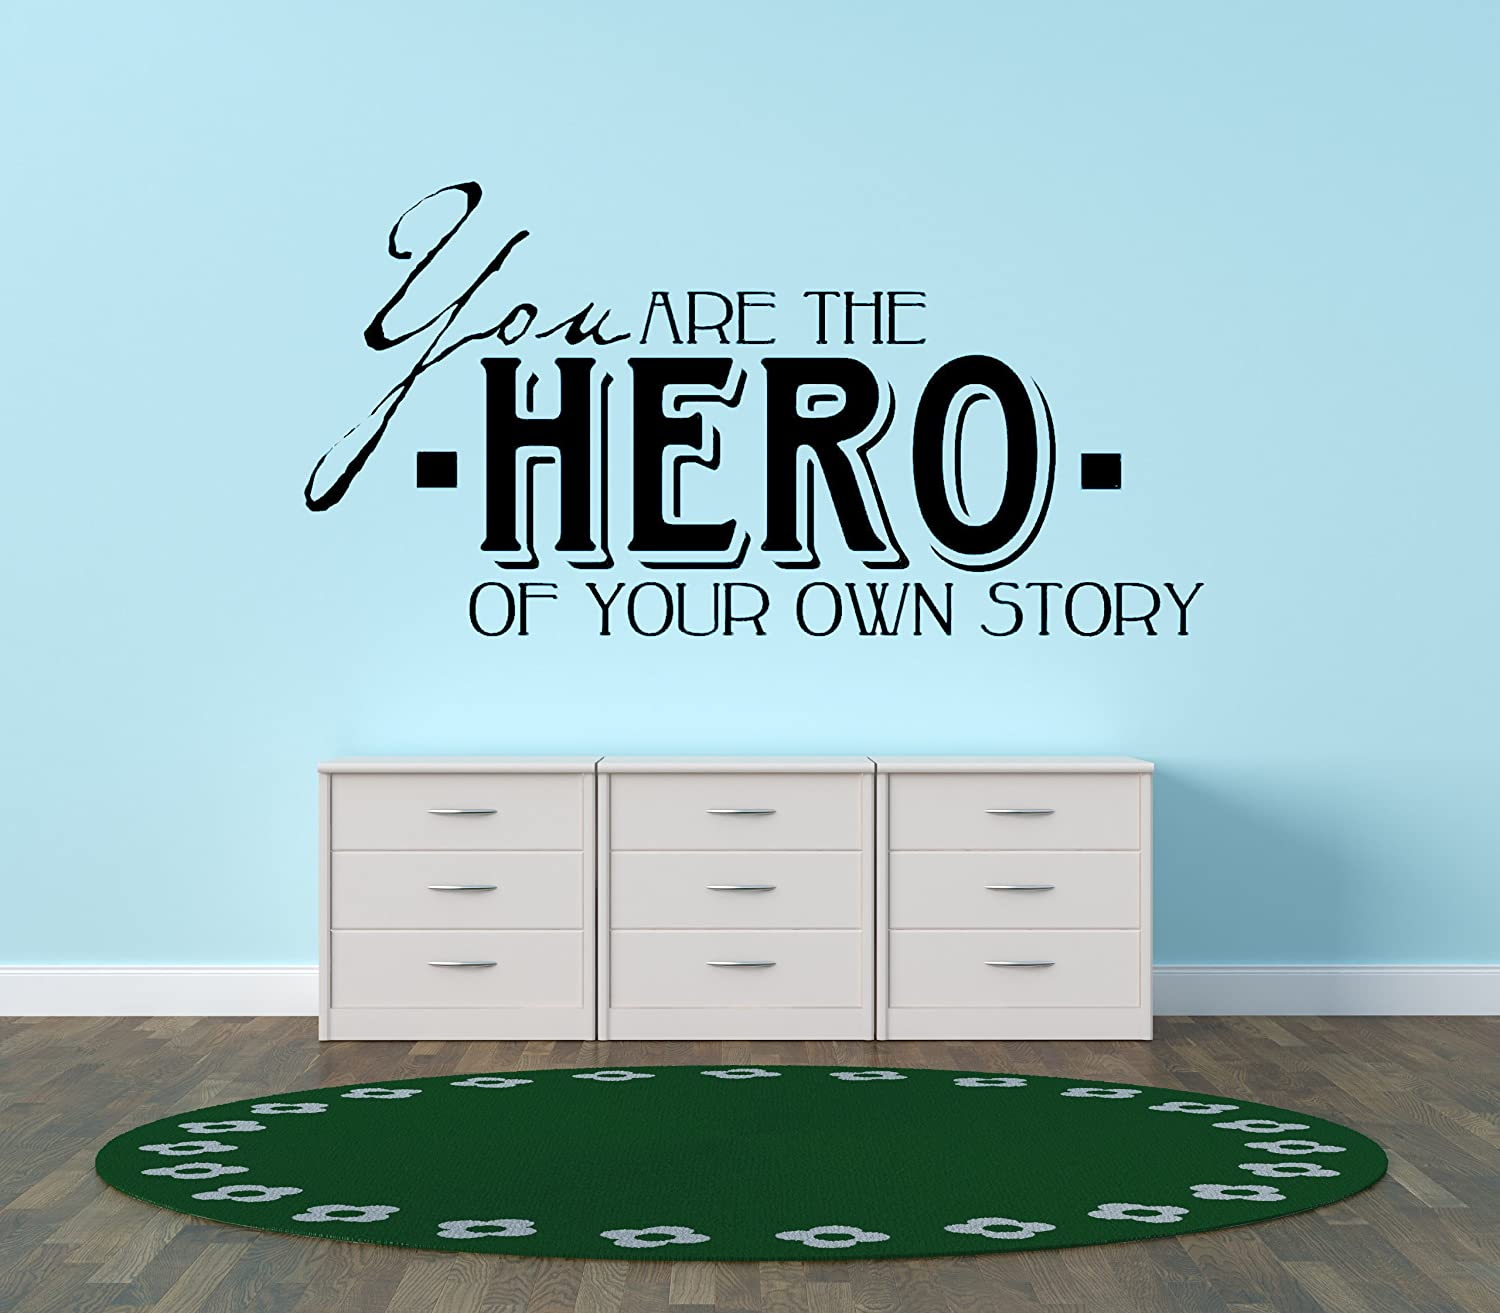 Design with Vinyl You Are The Hero Of Your Own Story Picture Art - Peel & Stick Vinyl Wall Decal Sticker Size : 20x20 Color : Black Black by Design with Vinyl B00H1YNRIK